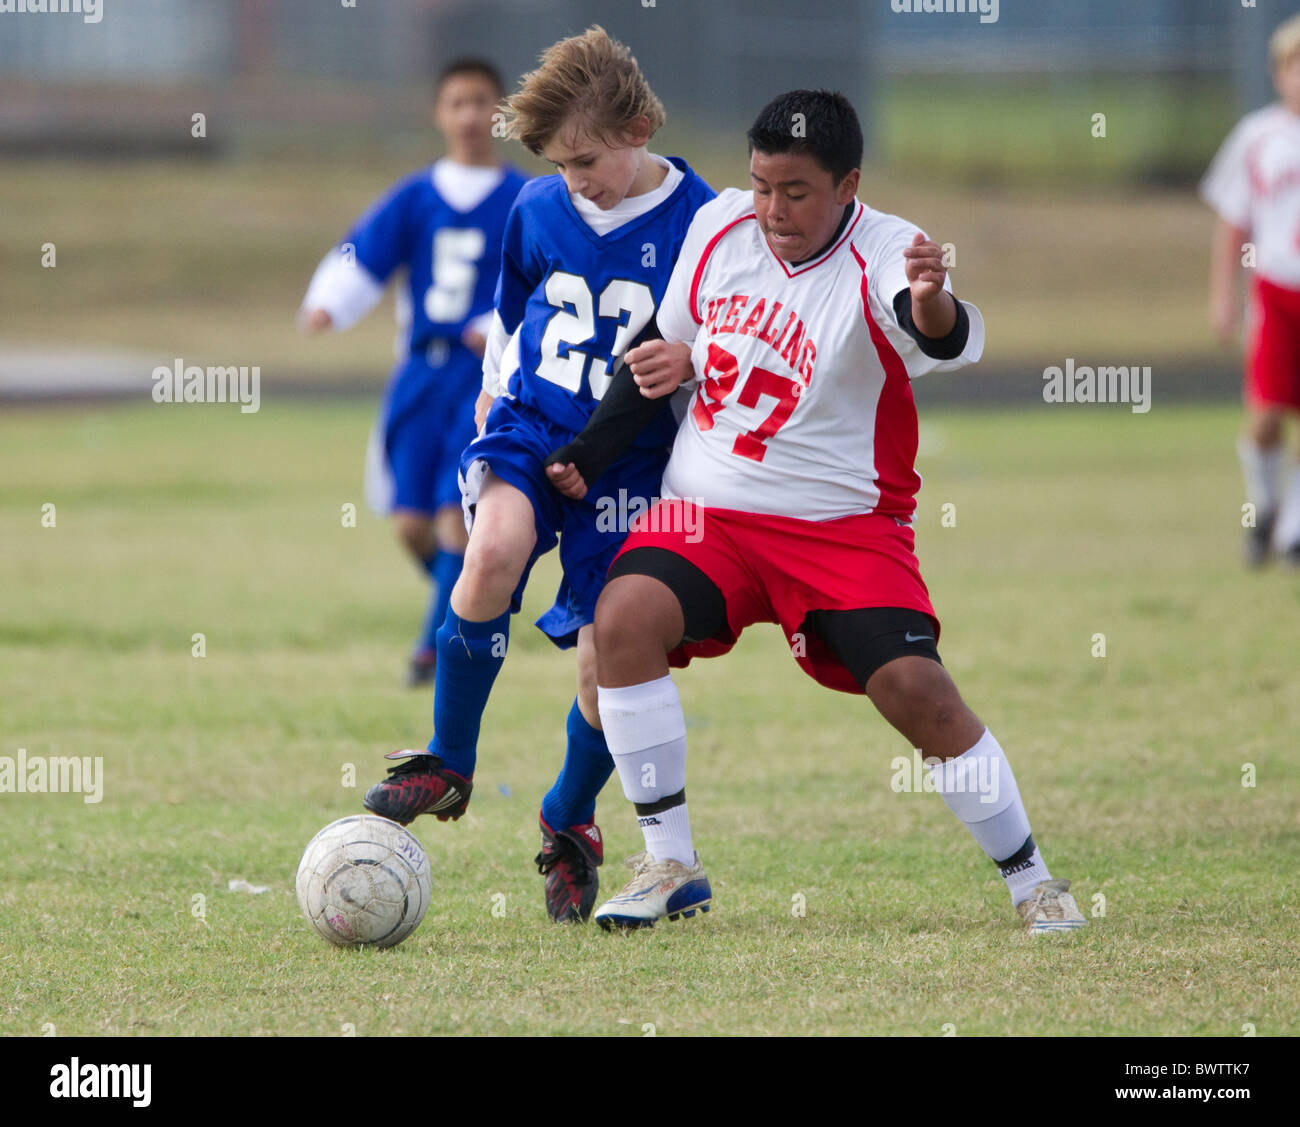 Seventh and eighth grade boys ages 13 and 14 play soccer for their school teams in a league match in Austin, Texas - Stock Image